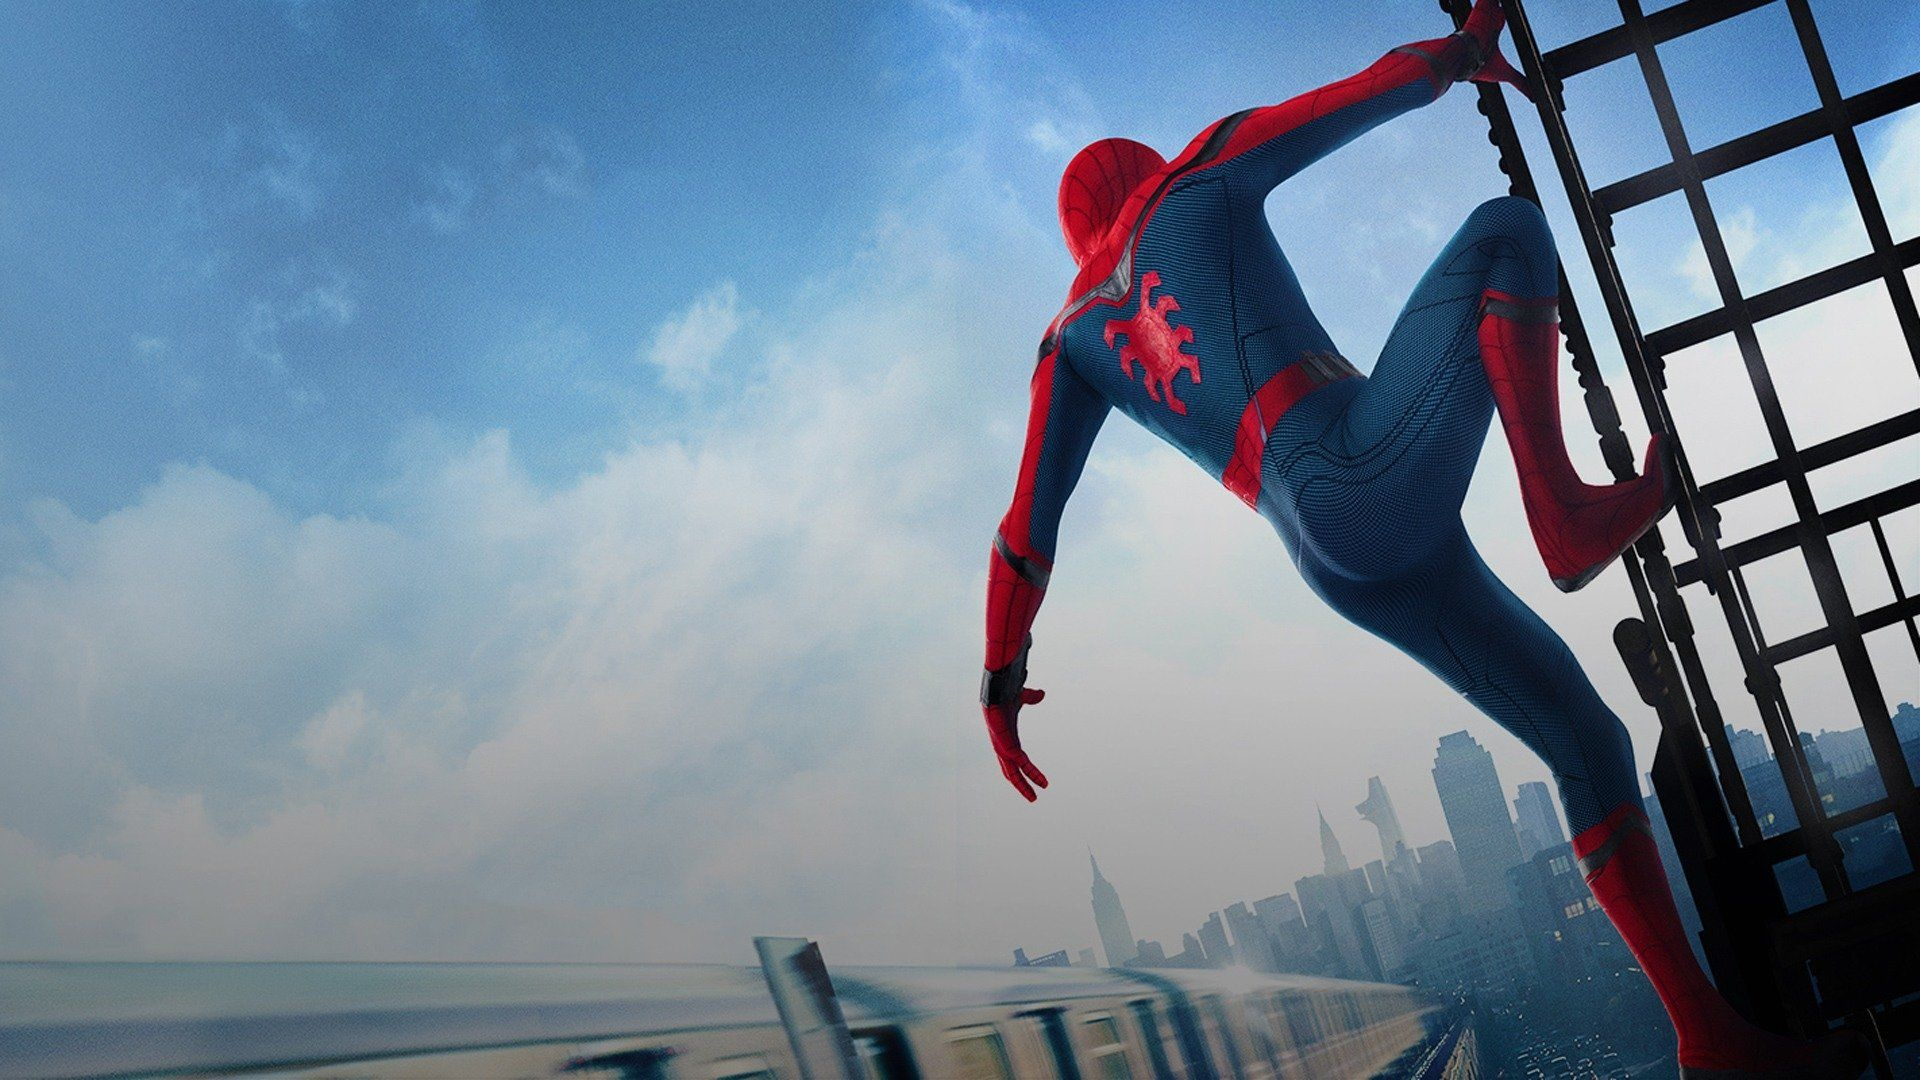 Spider Man Homecoming Wallpapers High Quality In 2020 Spiderman Spiderman Homecoming Avengers Wallpaper